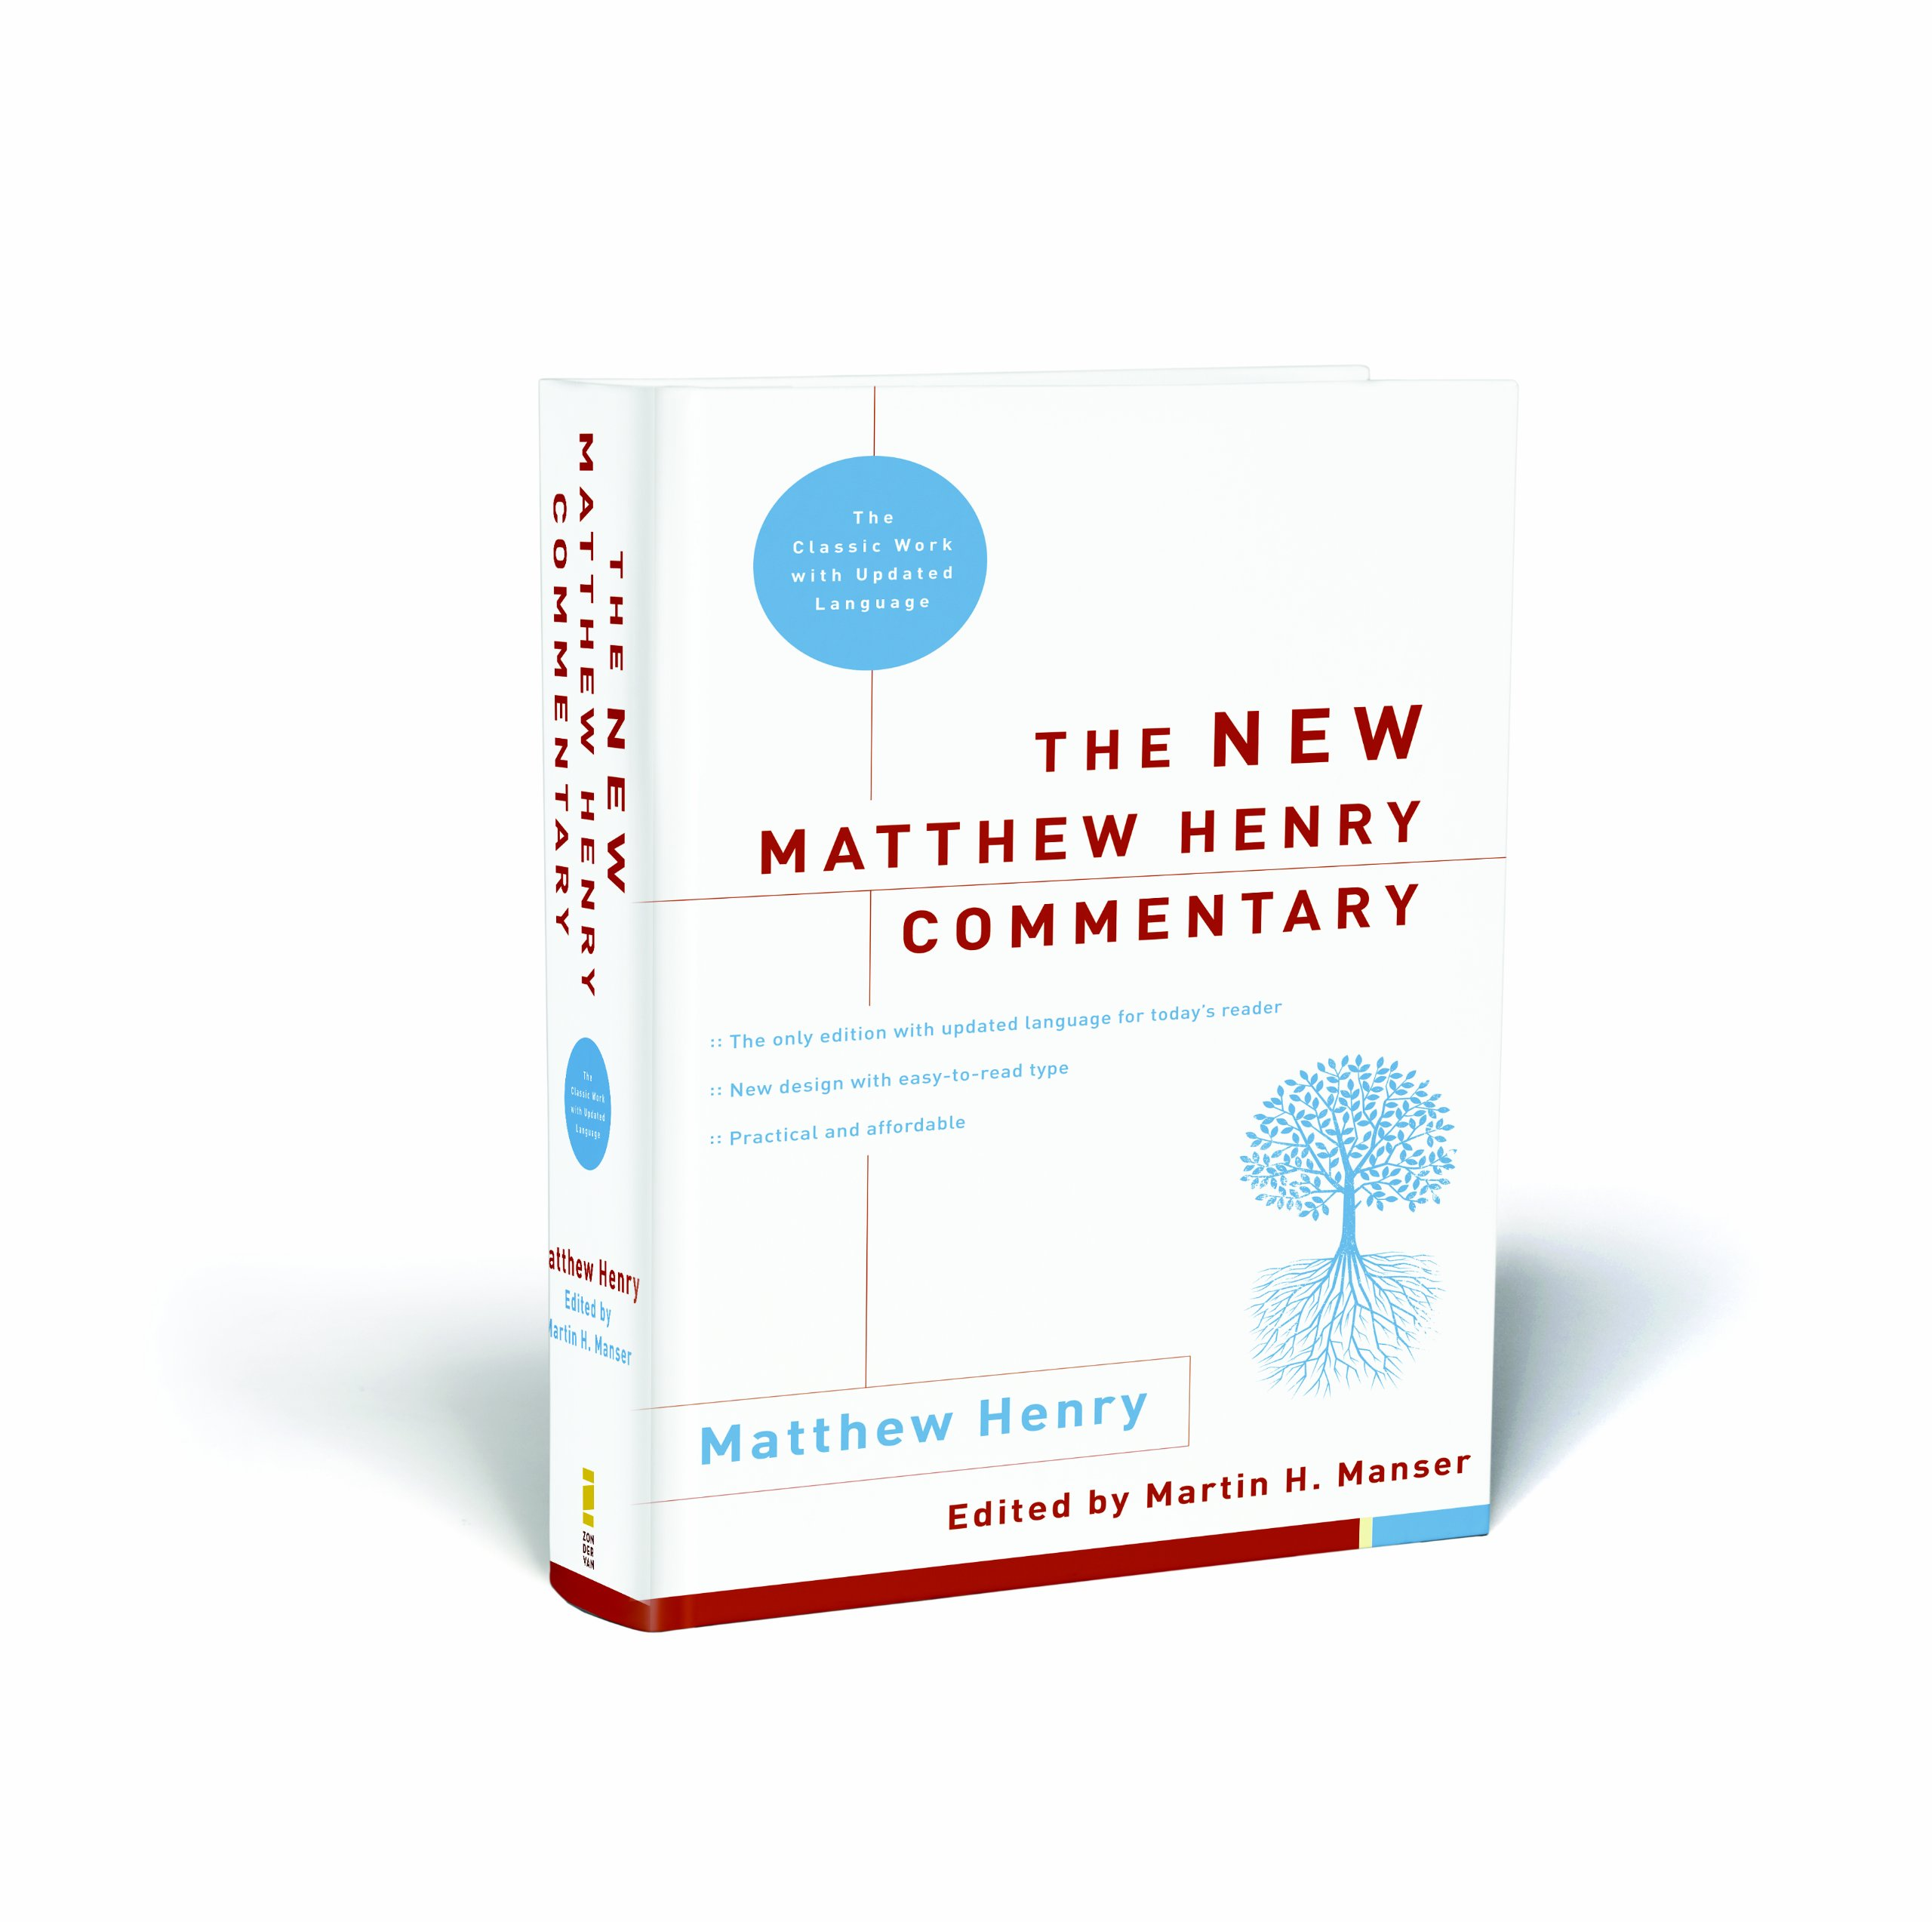 The New Matthew Henry Commentary: The Classic Work with Updated Language by HarperCollins Christian Pub.